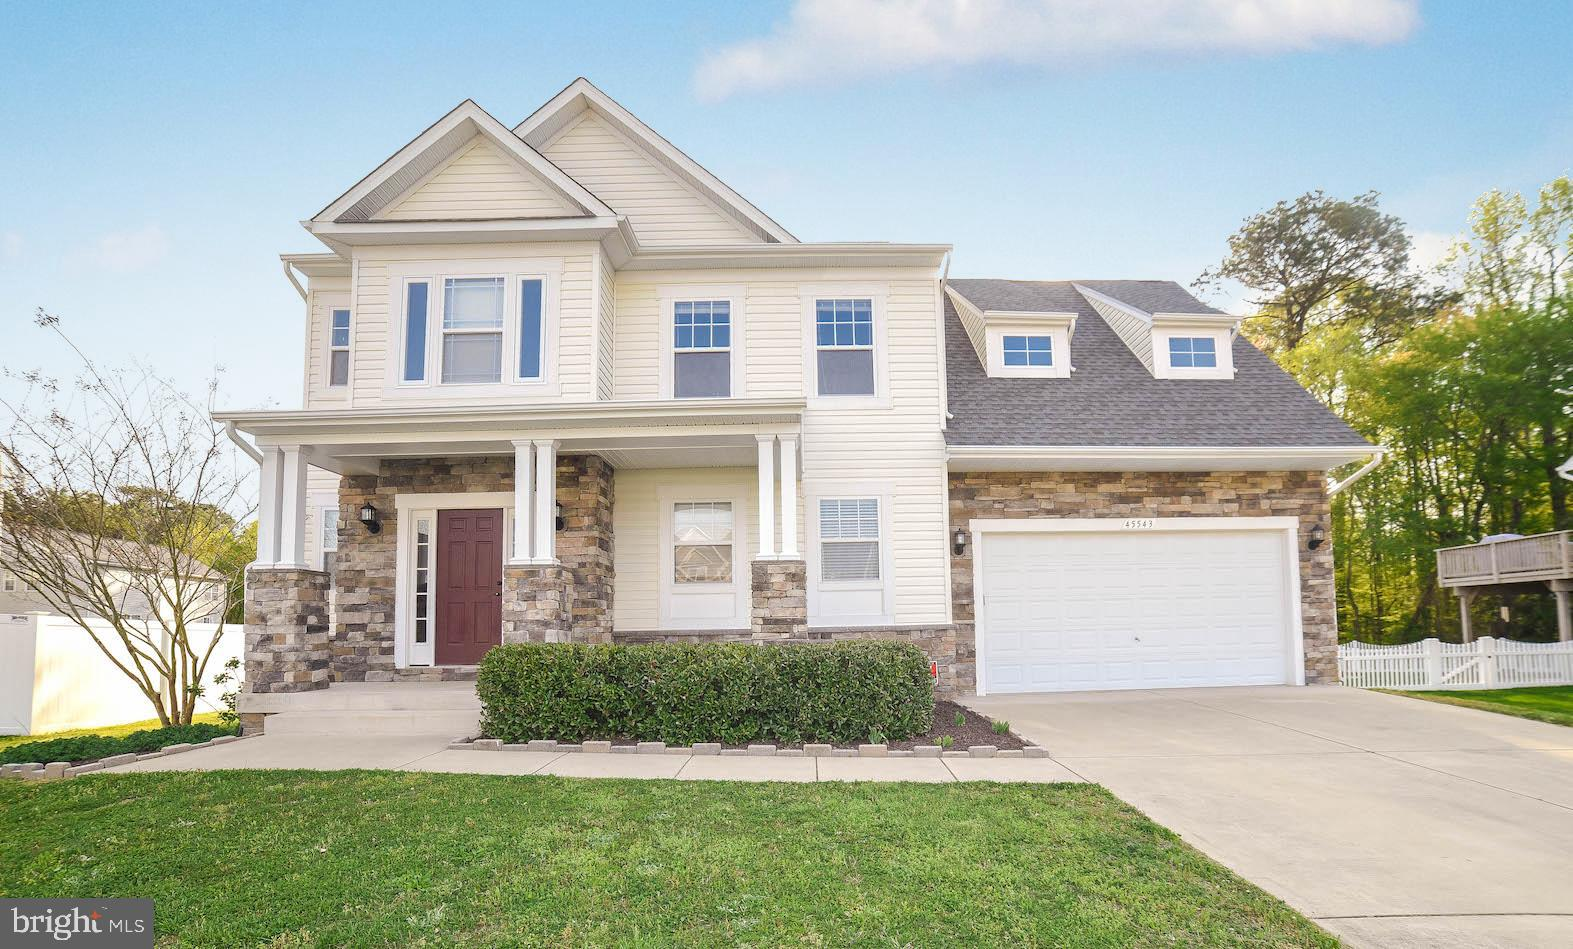 Beautifully maintained home in Elizabeth Hills subdivision with easy access to Pax River NAS, school